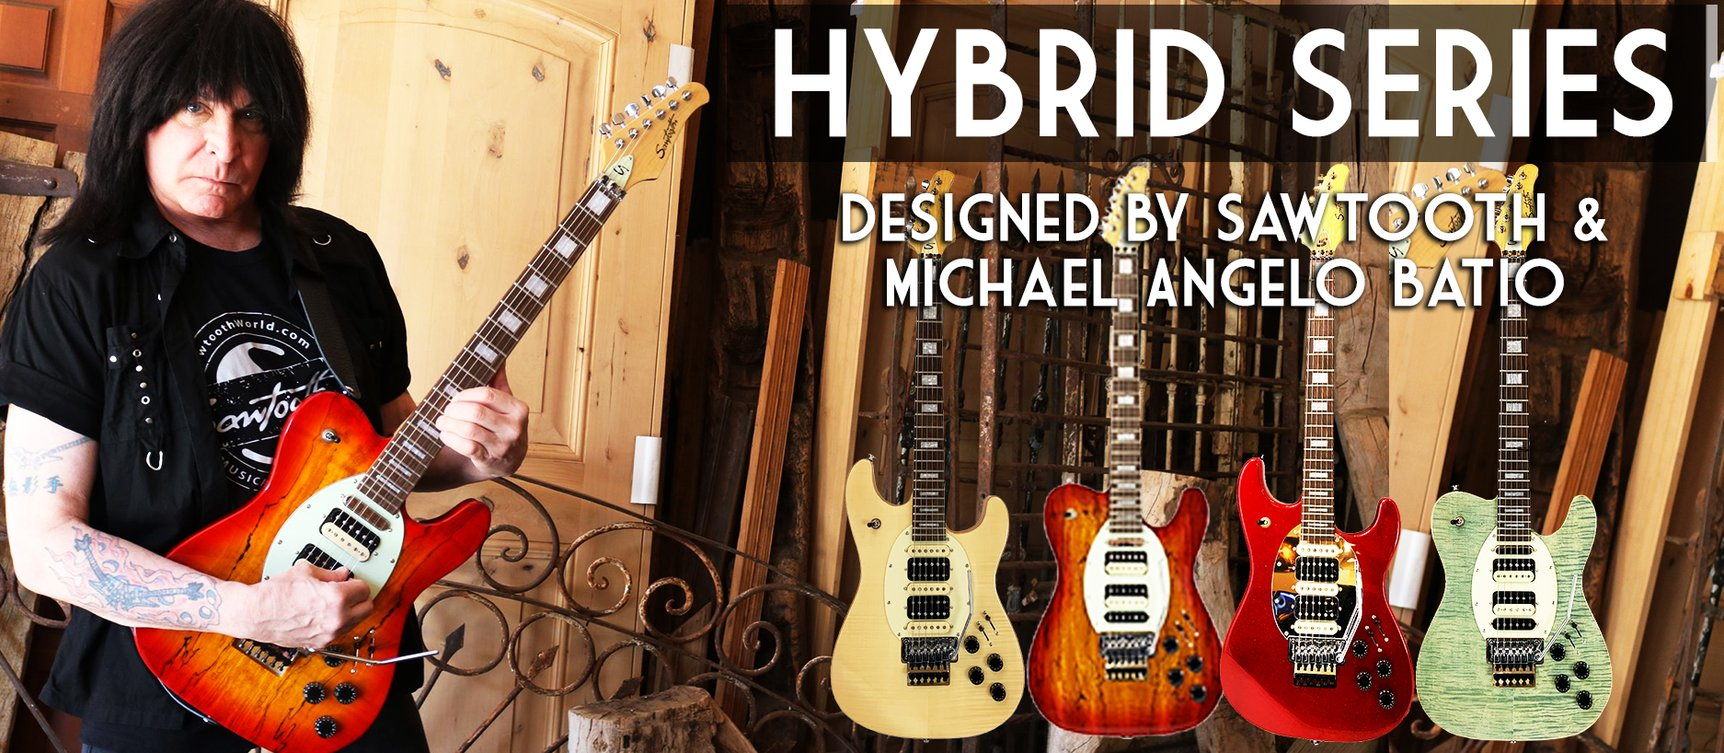 Michael Angelo Batio Hybrid Guitars